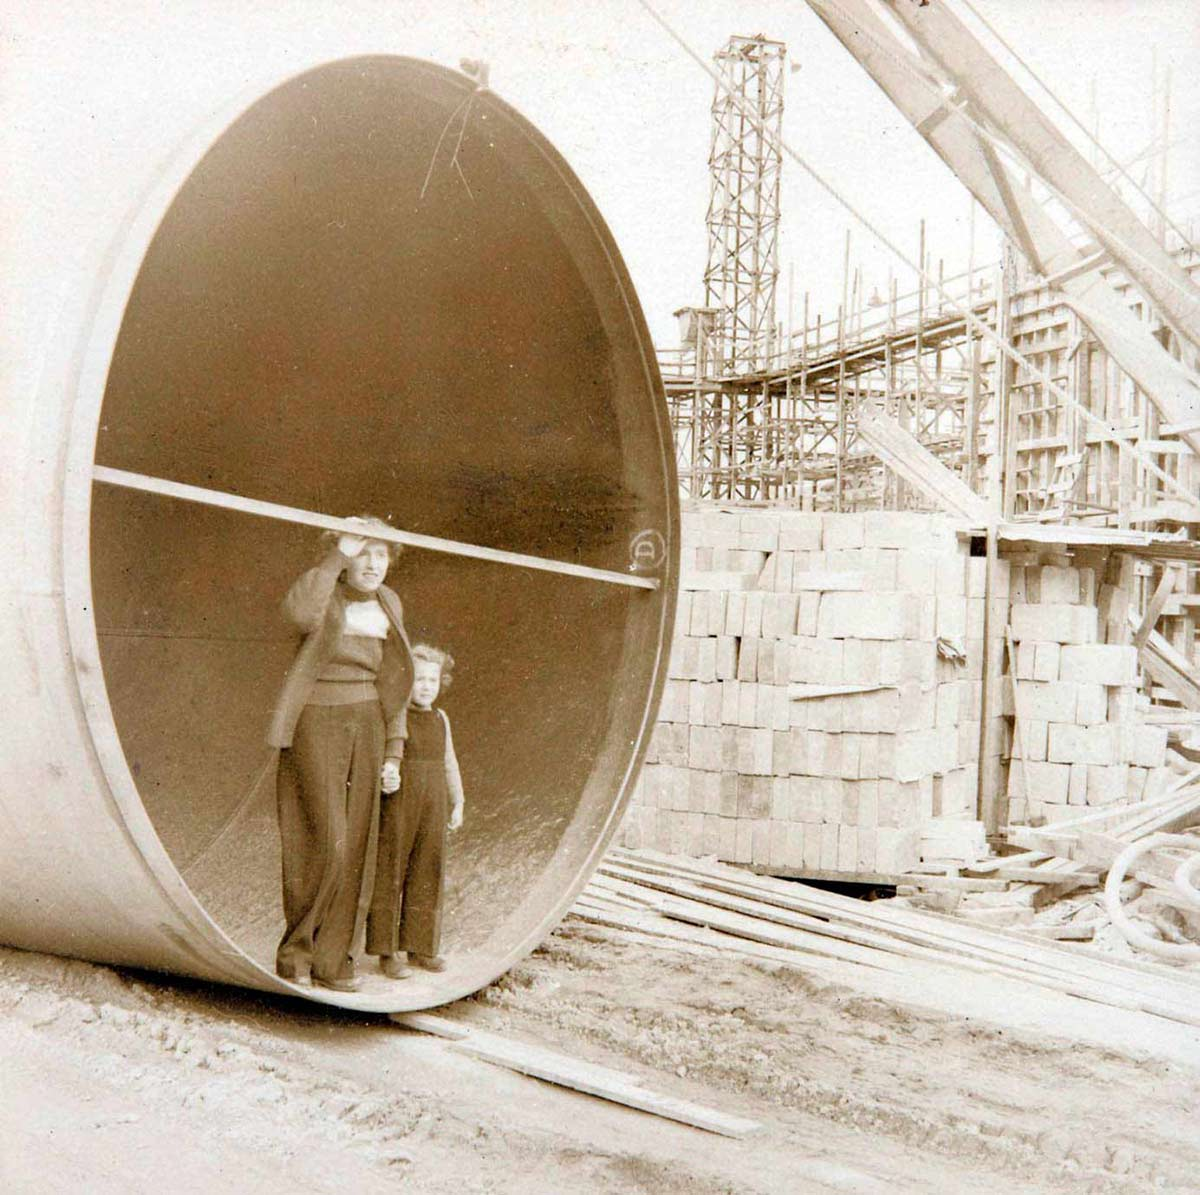 Photograph of a woman and a young girl standing inside the open end of a very large pipe at a building site. - click to view larger image